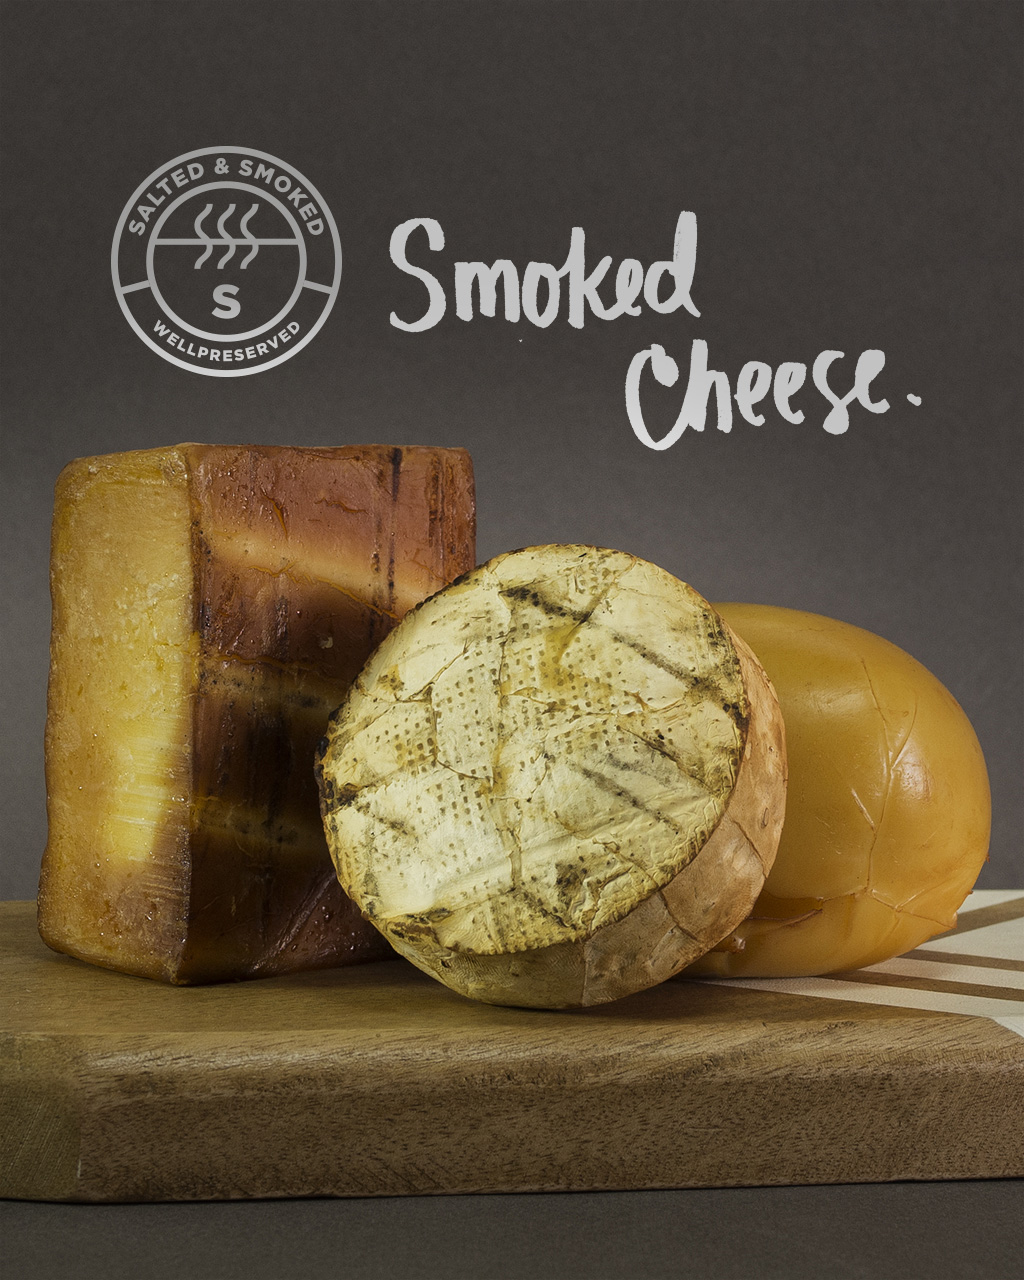 Smoked Cheese - how to make it